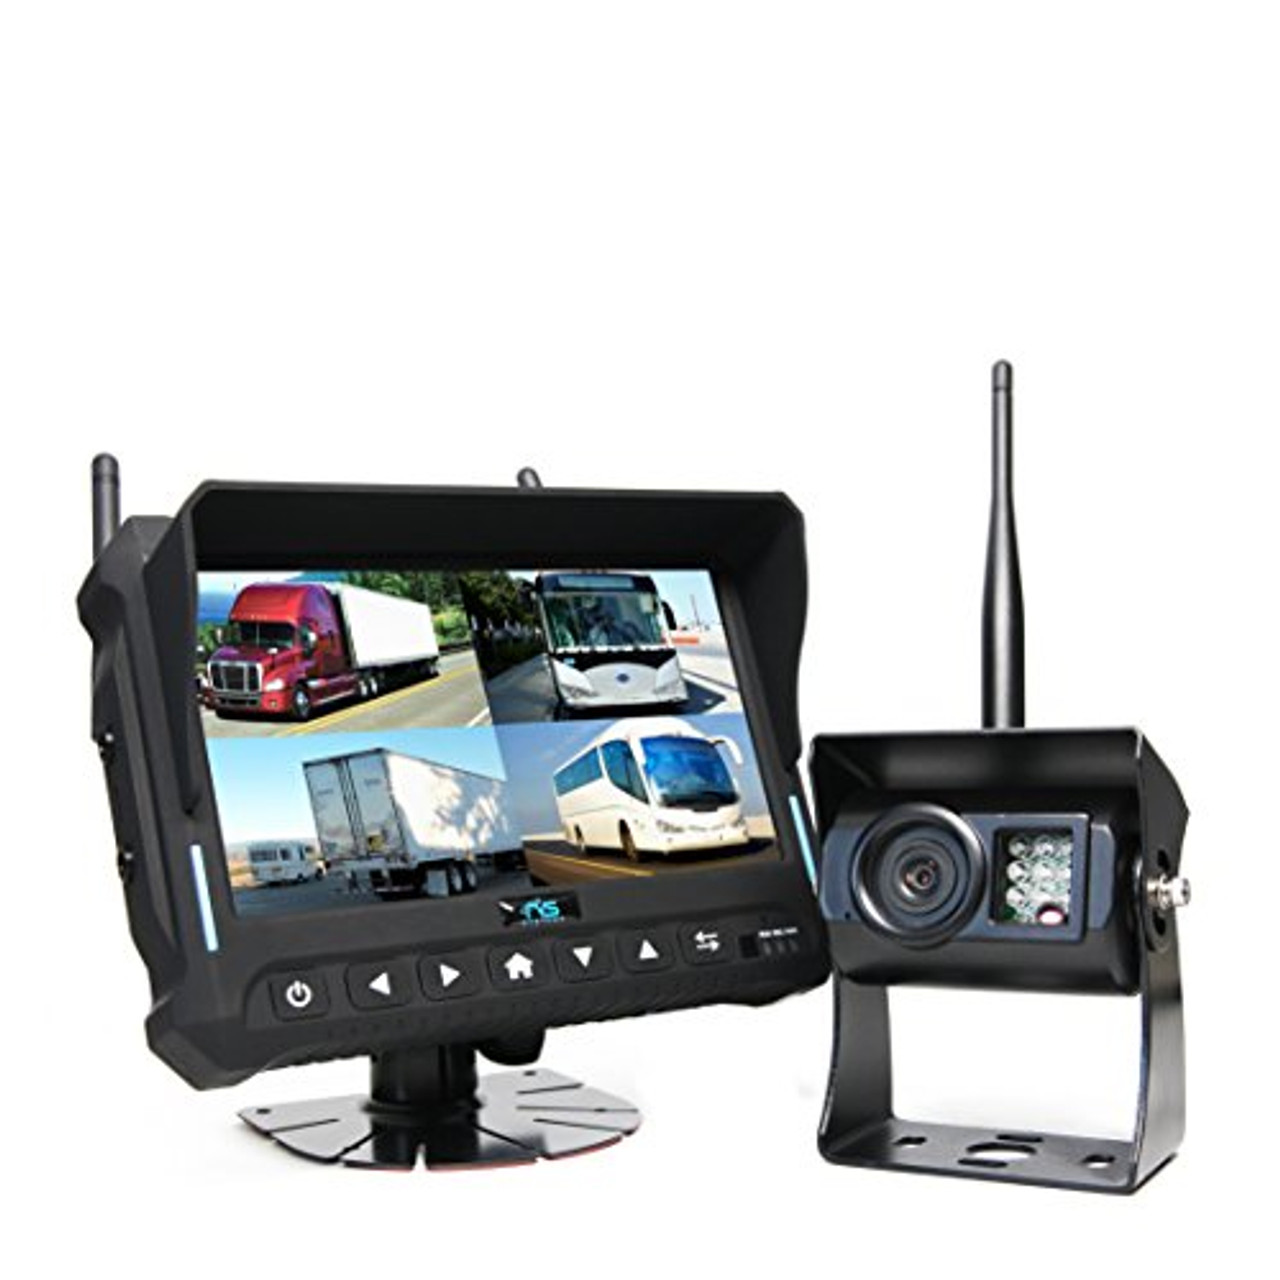 "Rear View Safety Wireless Backup Camera System with 7"" Quad View Display and Built-in DVR RVS-4CAM 